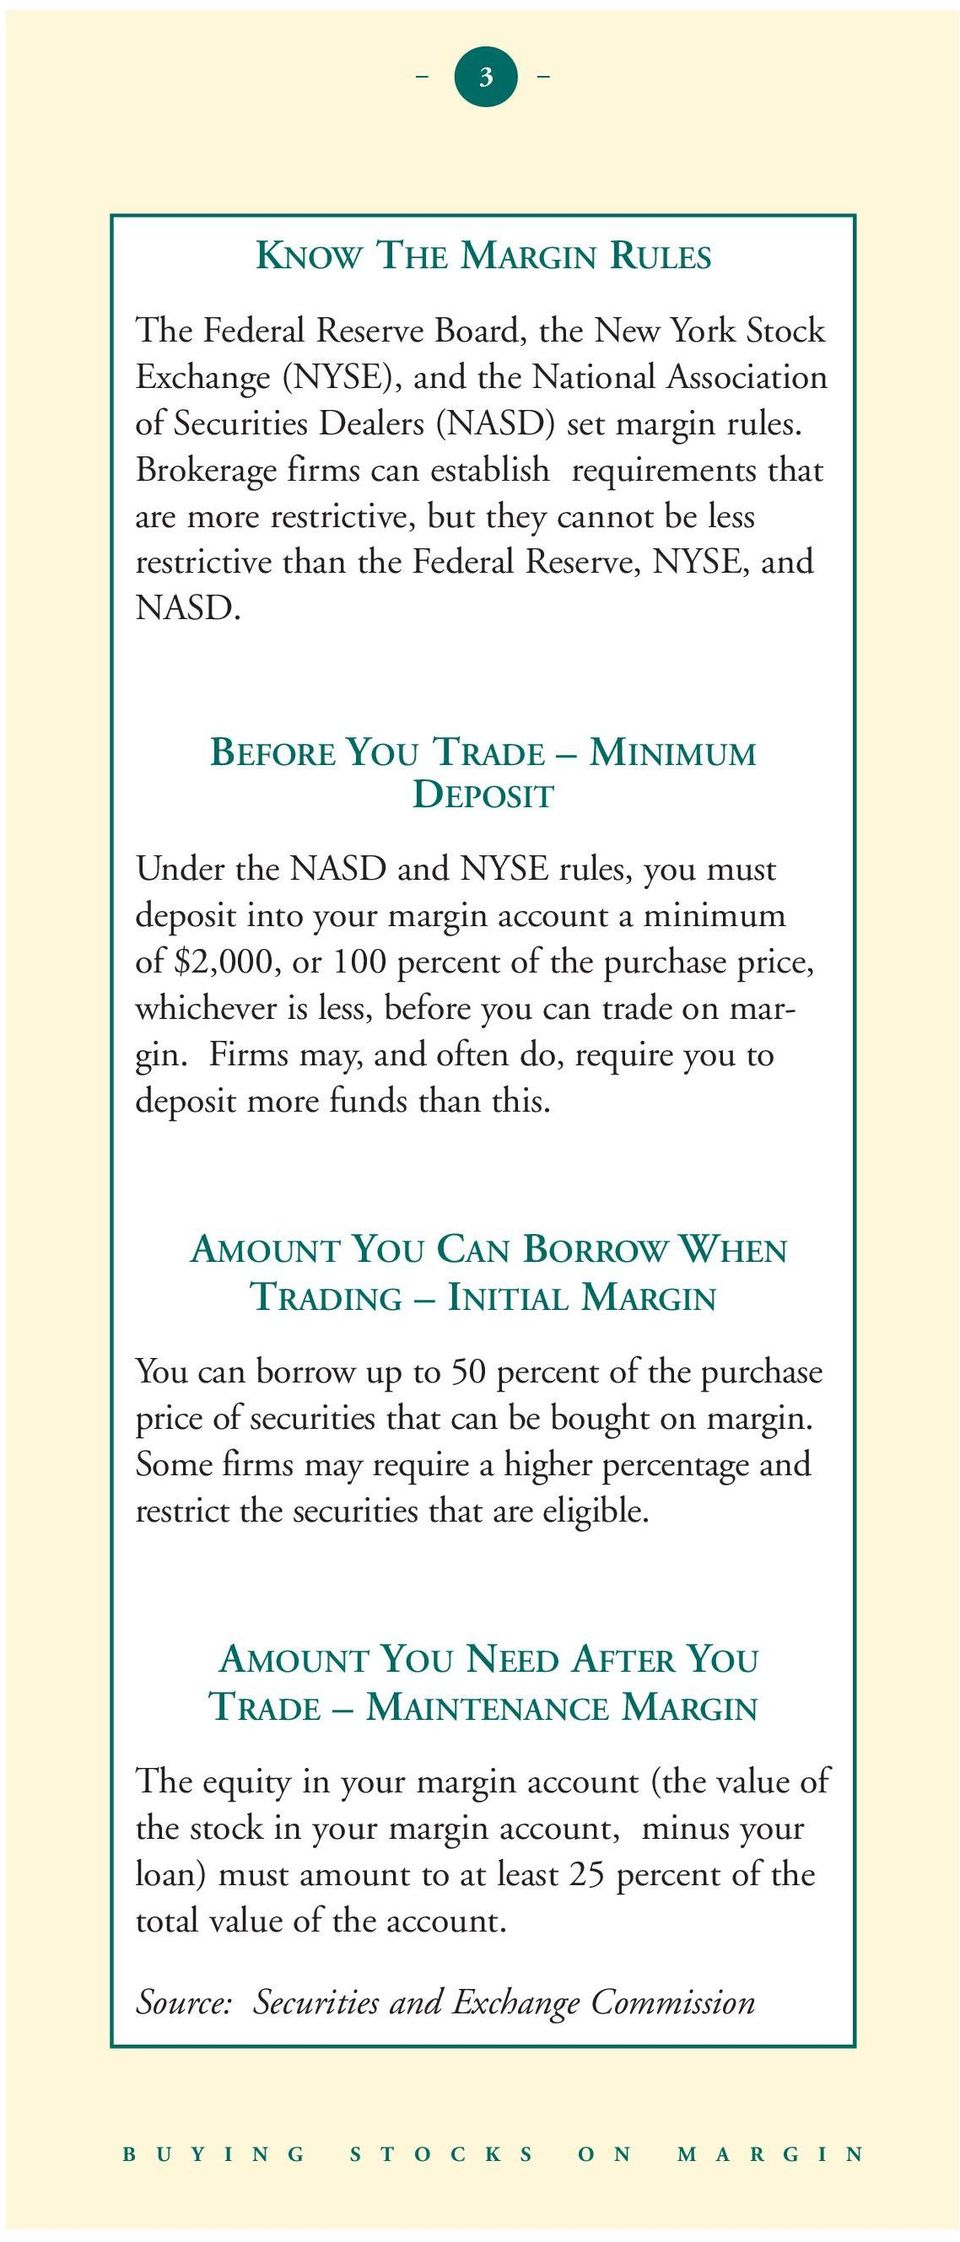 BEFORE YOU TRADE MINIMUM DEPOSIT Under the NASD and NYSE rules, you must deposit into your margin account a minimum of 2,000, or 100 percent of the purchase price, whichever is less, before you can